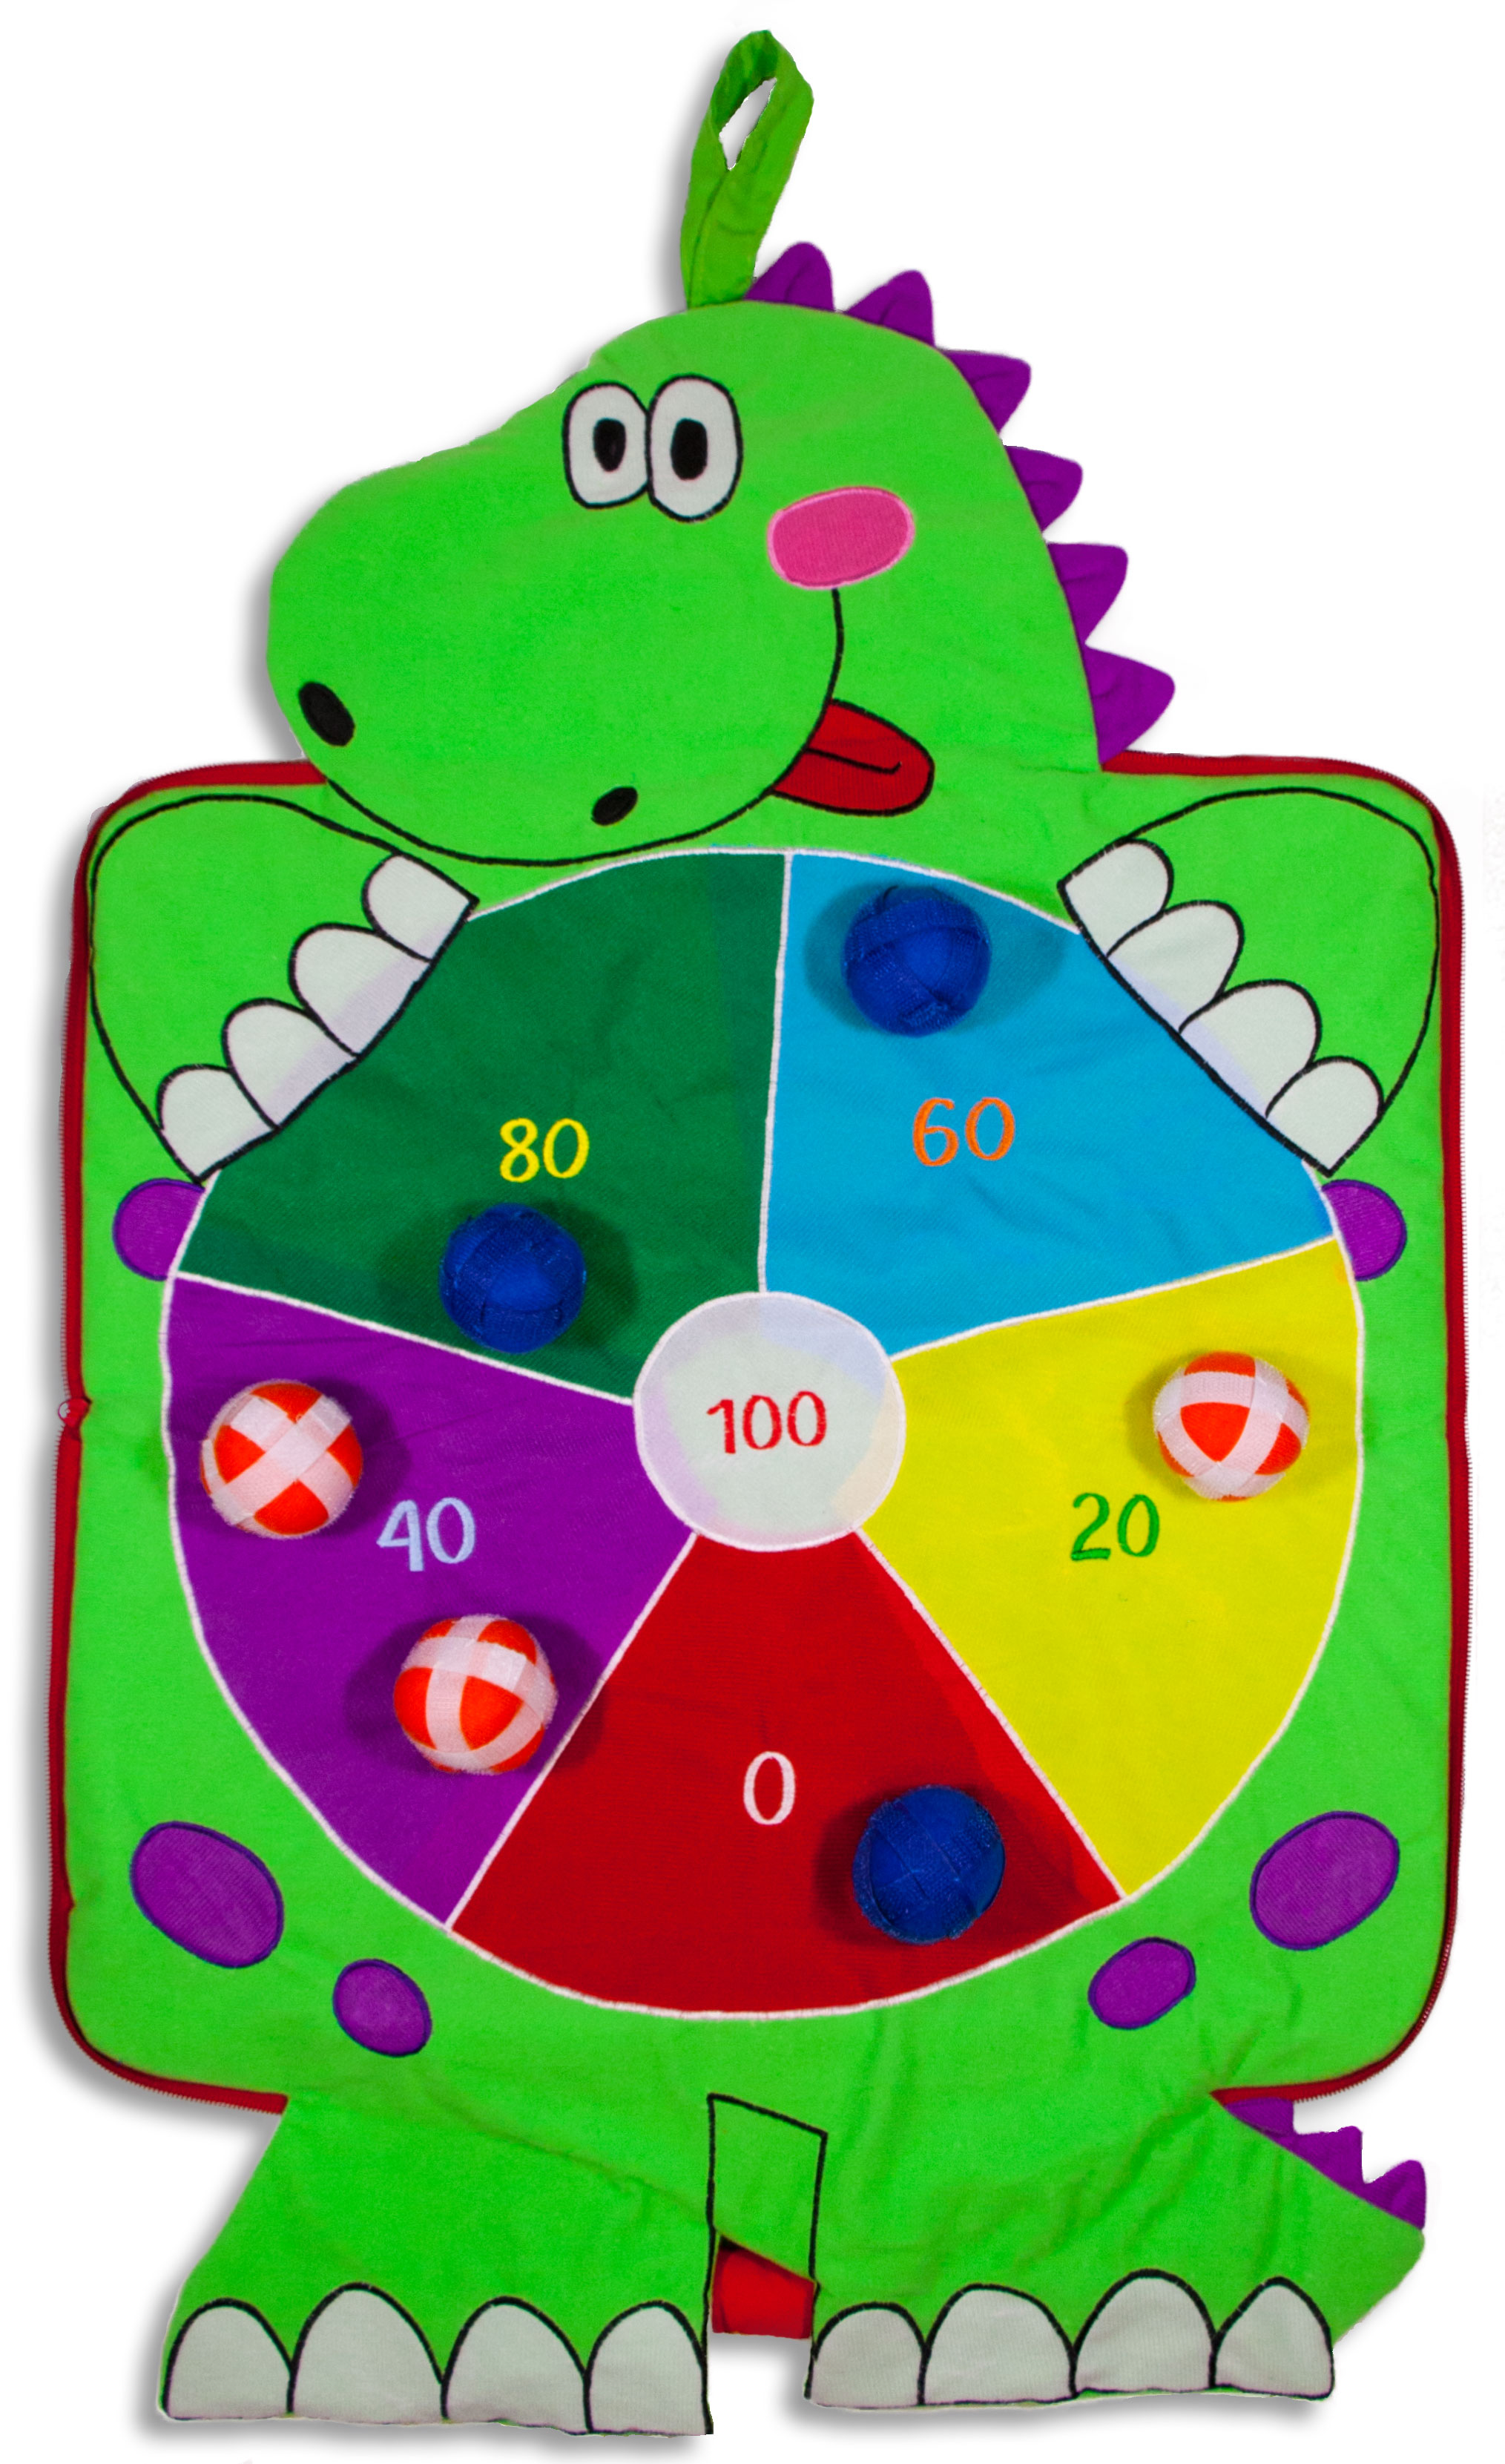 Darts clipart dartball. Dino dart ball